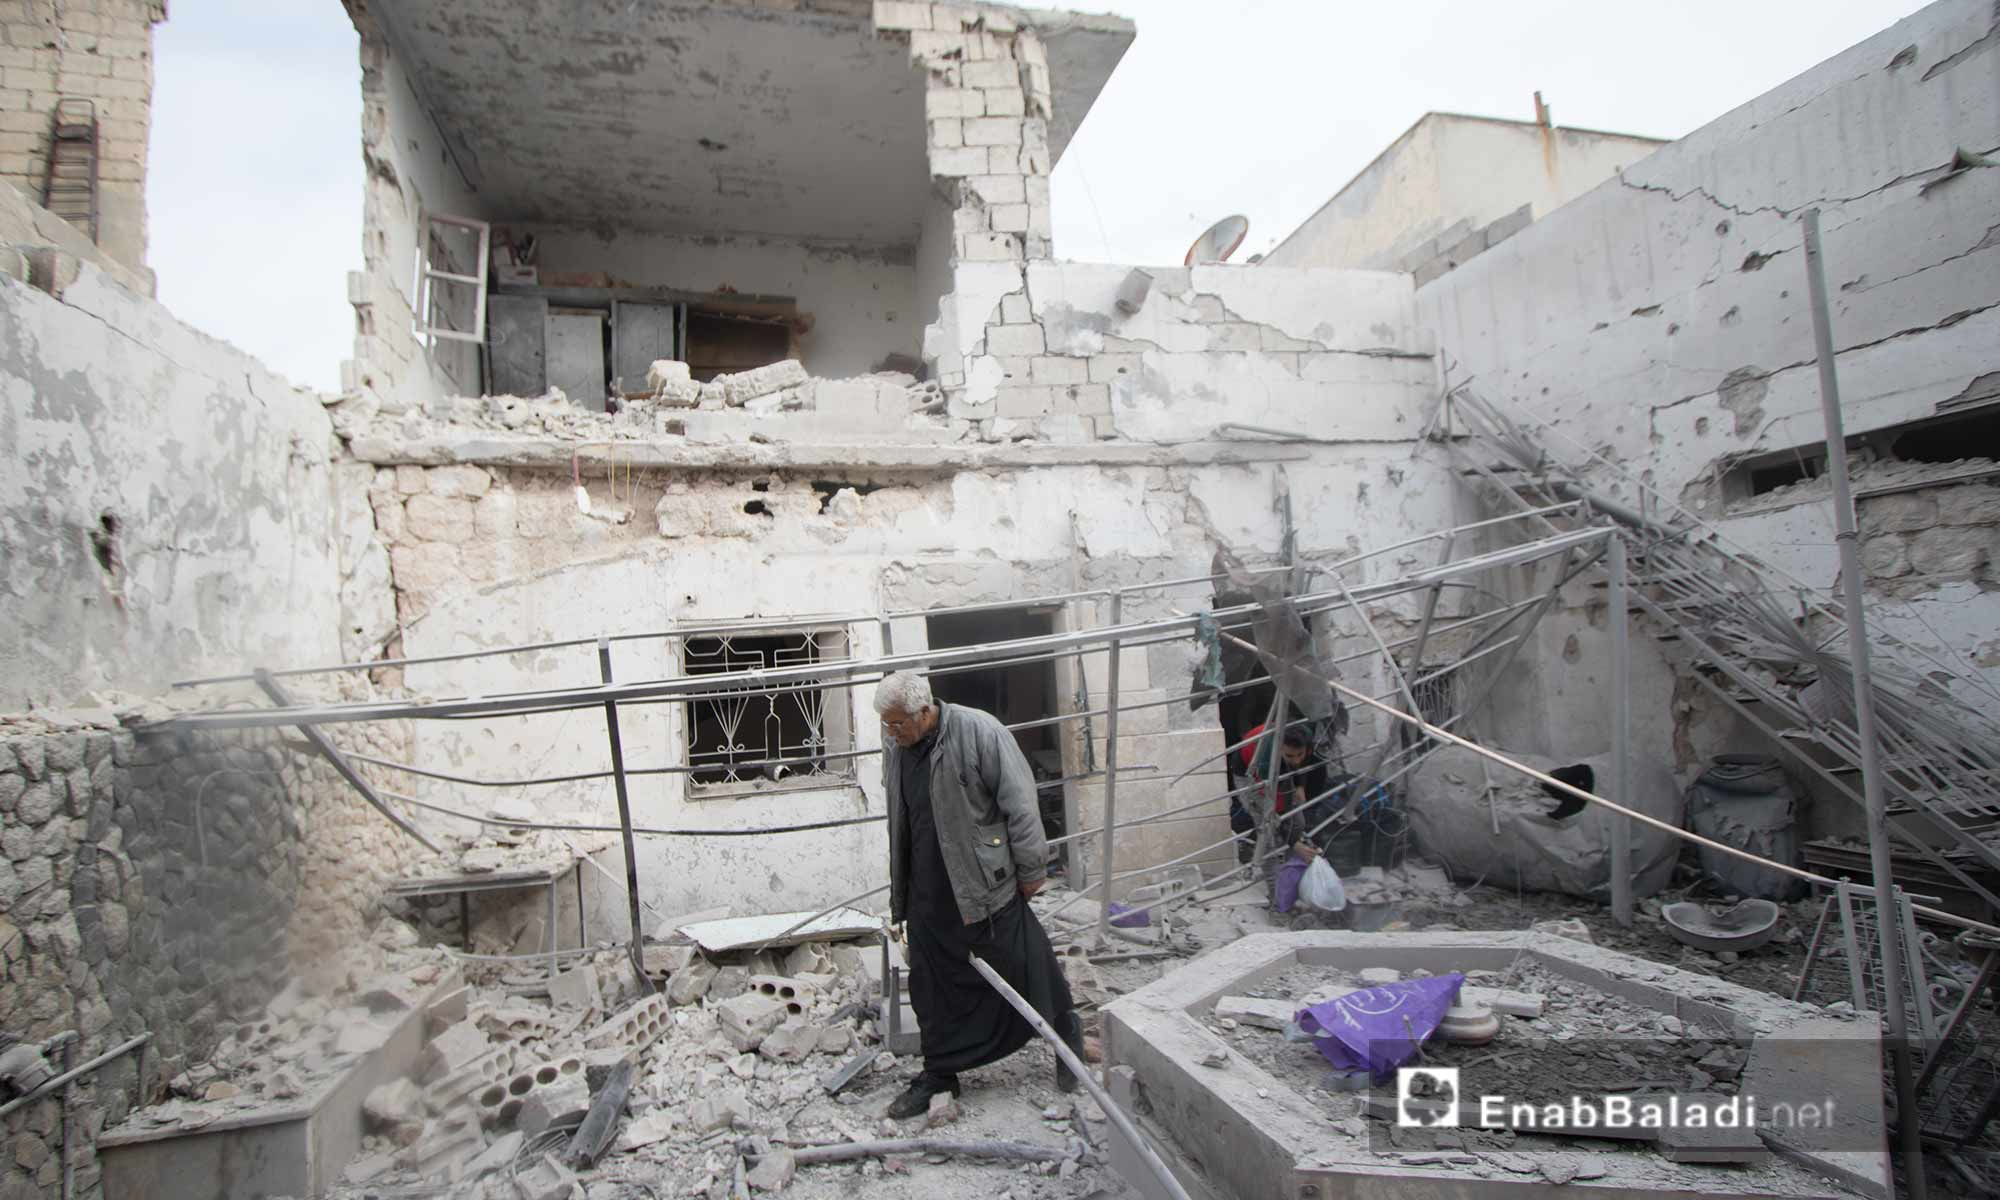 The aftermath of the aerial bombing on residential neighborhoods and service centers in Saraqib city, eastern Idlib - 10 March 2019 (Enab Baladi)